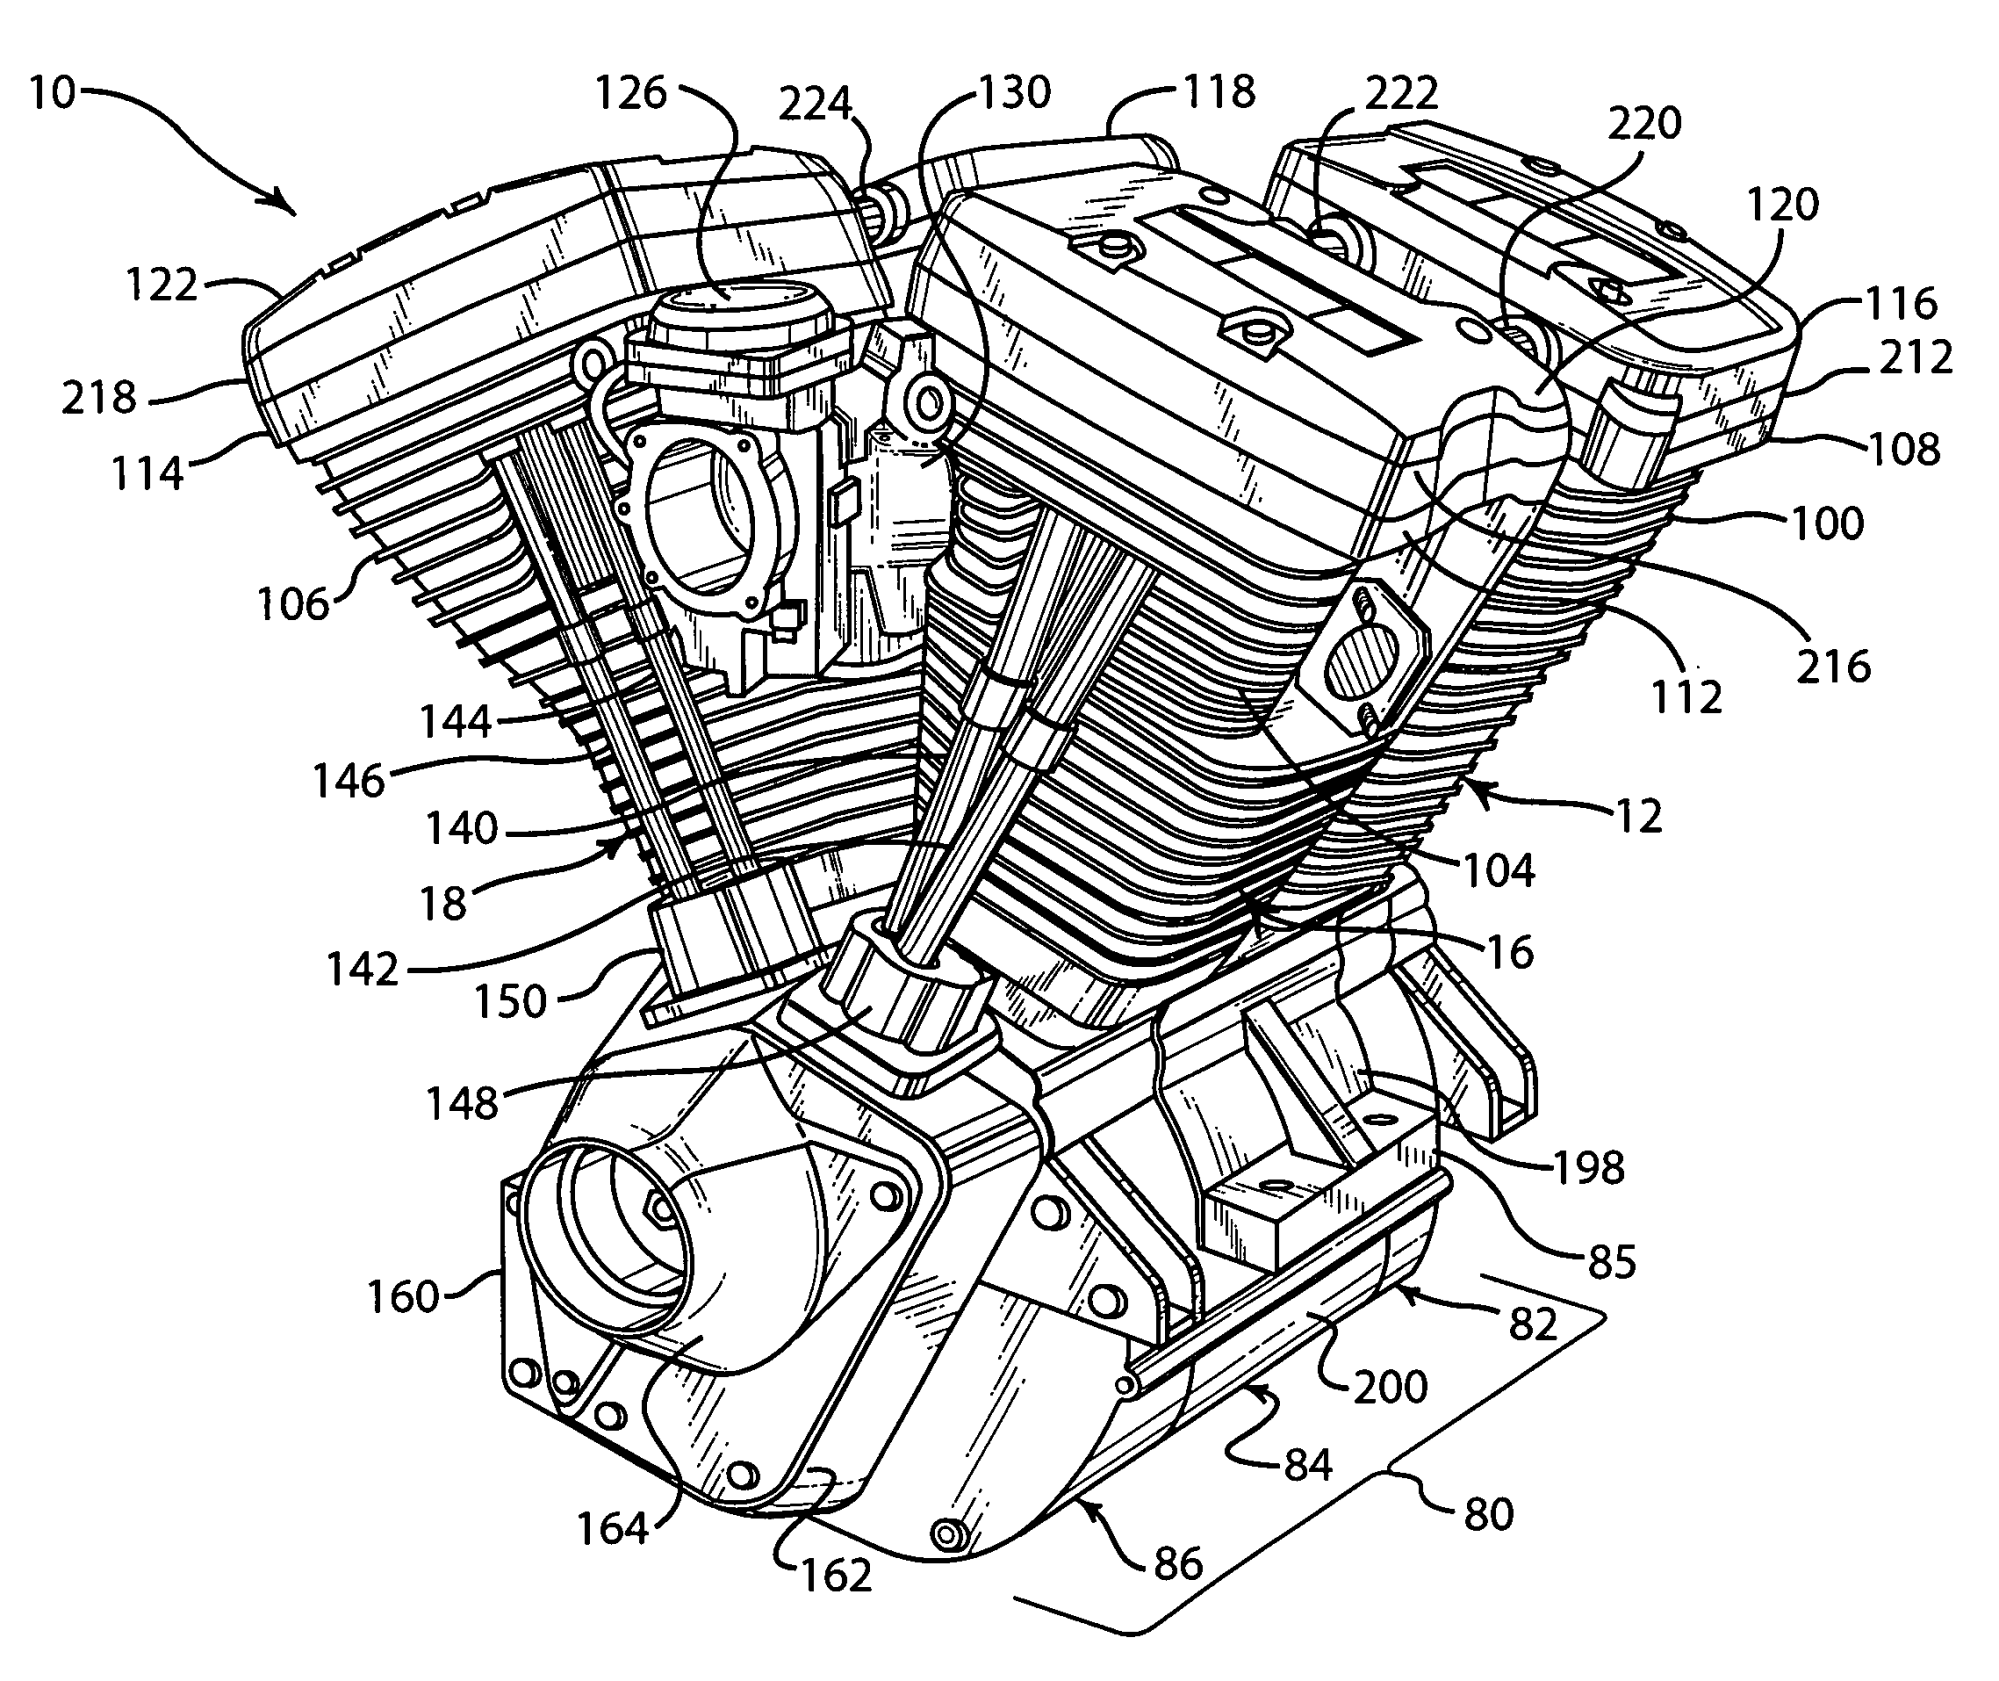 hight resolution of 2277x1914 harley v twin engine diagram patent drawing recent photoshots so